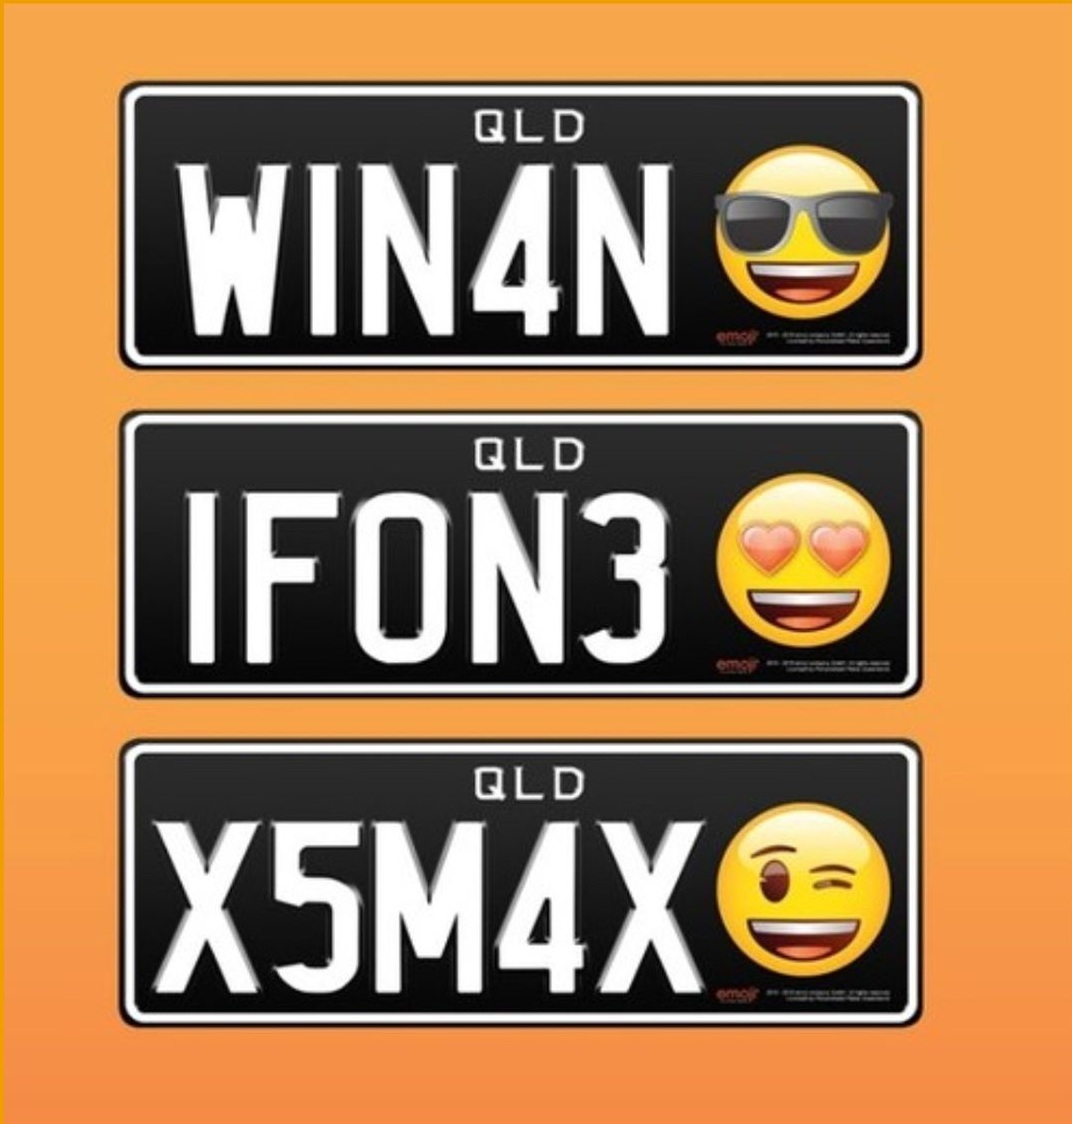 emoji_license_plates_besupercreative.jpg